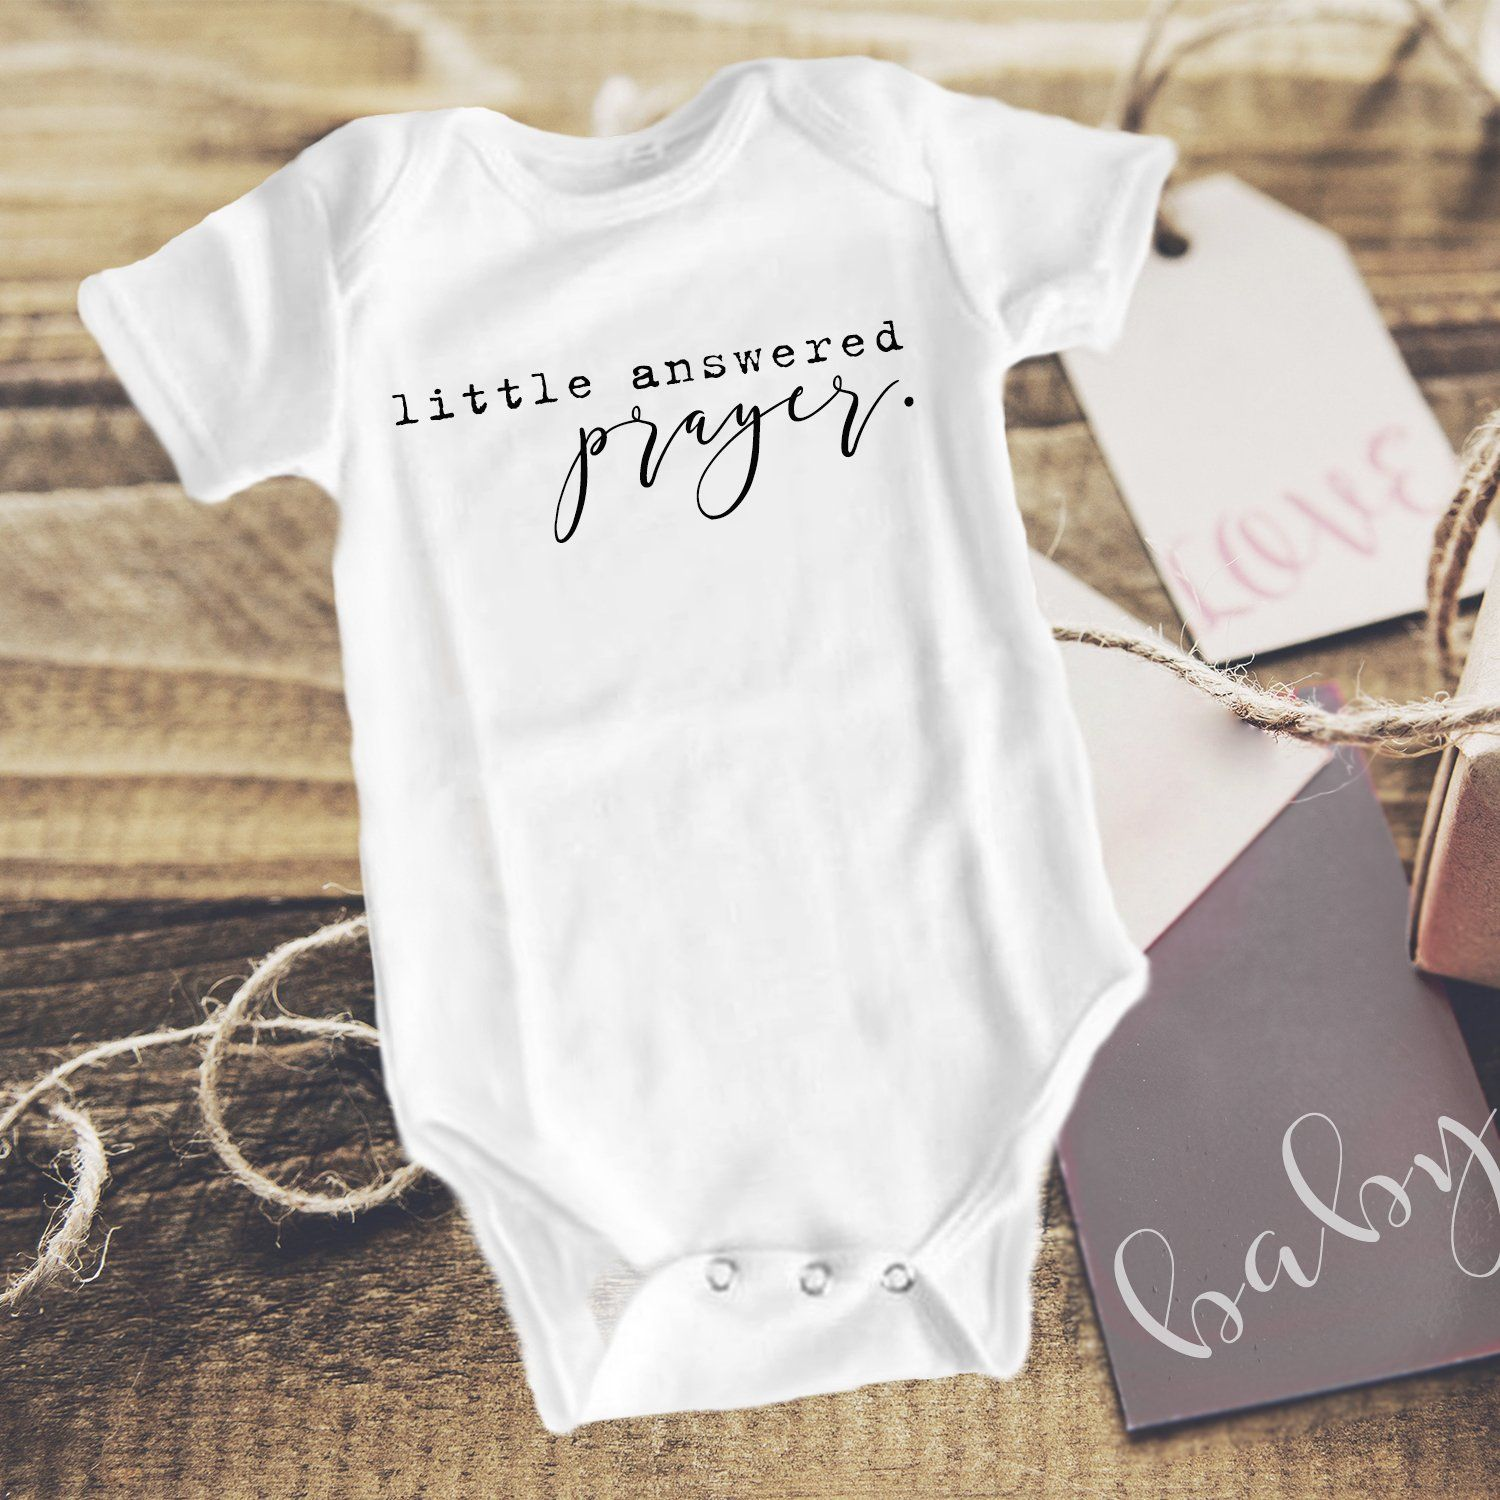 51799a353 Little Answered Prayer Baby Announcement Onesies®, Pregnancy ...